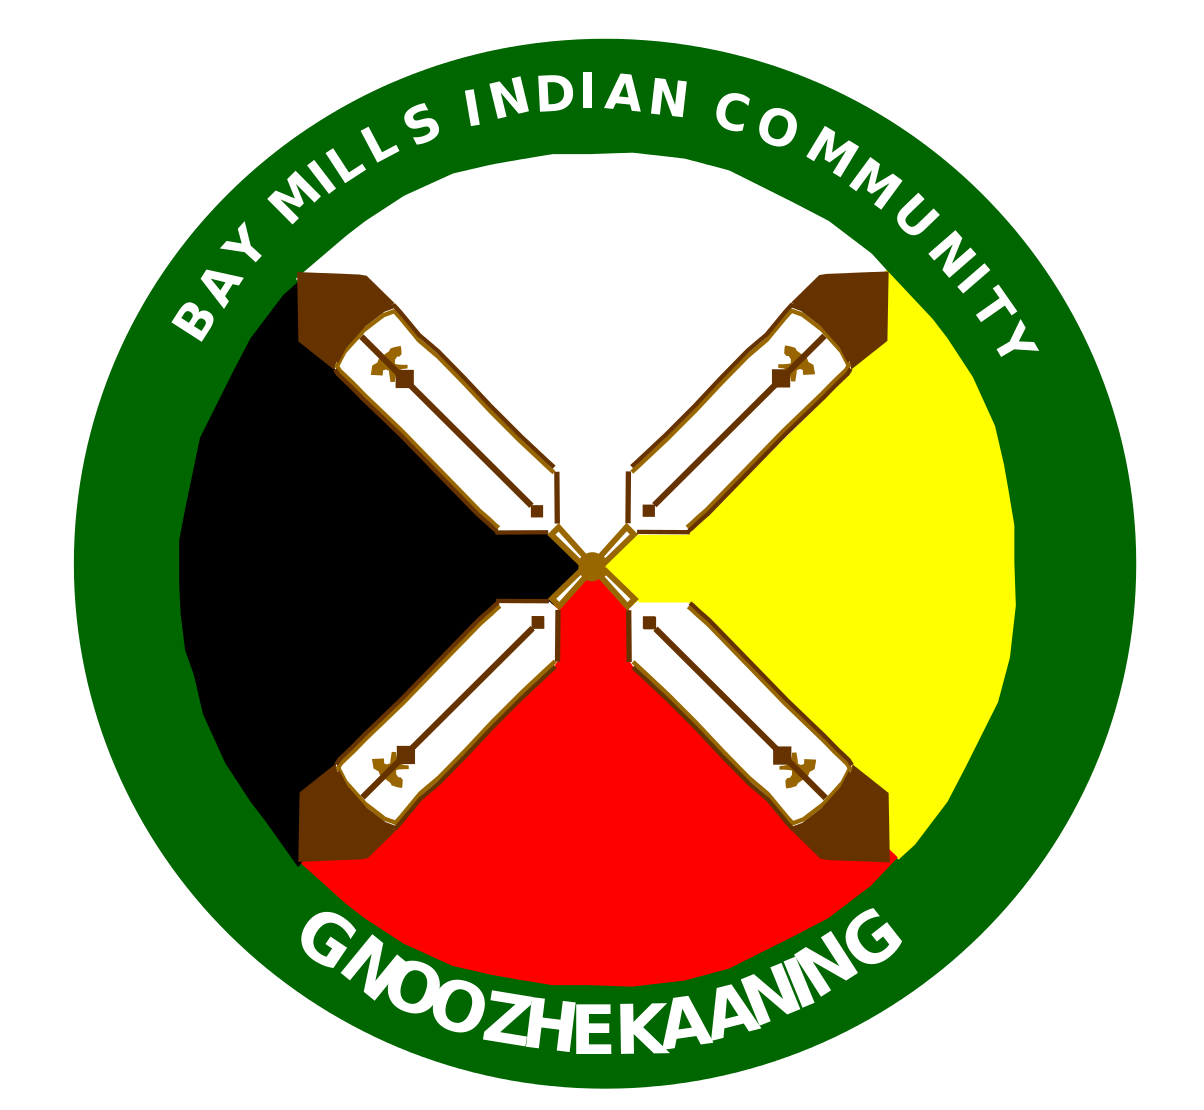 Bay Mills Indian Community Issues Statement in Support of Other Tribal Nations